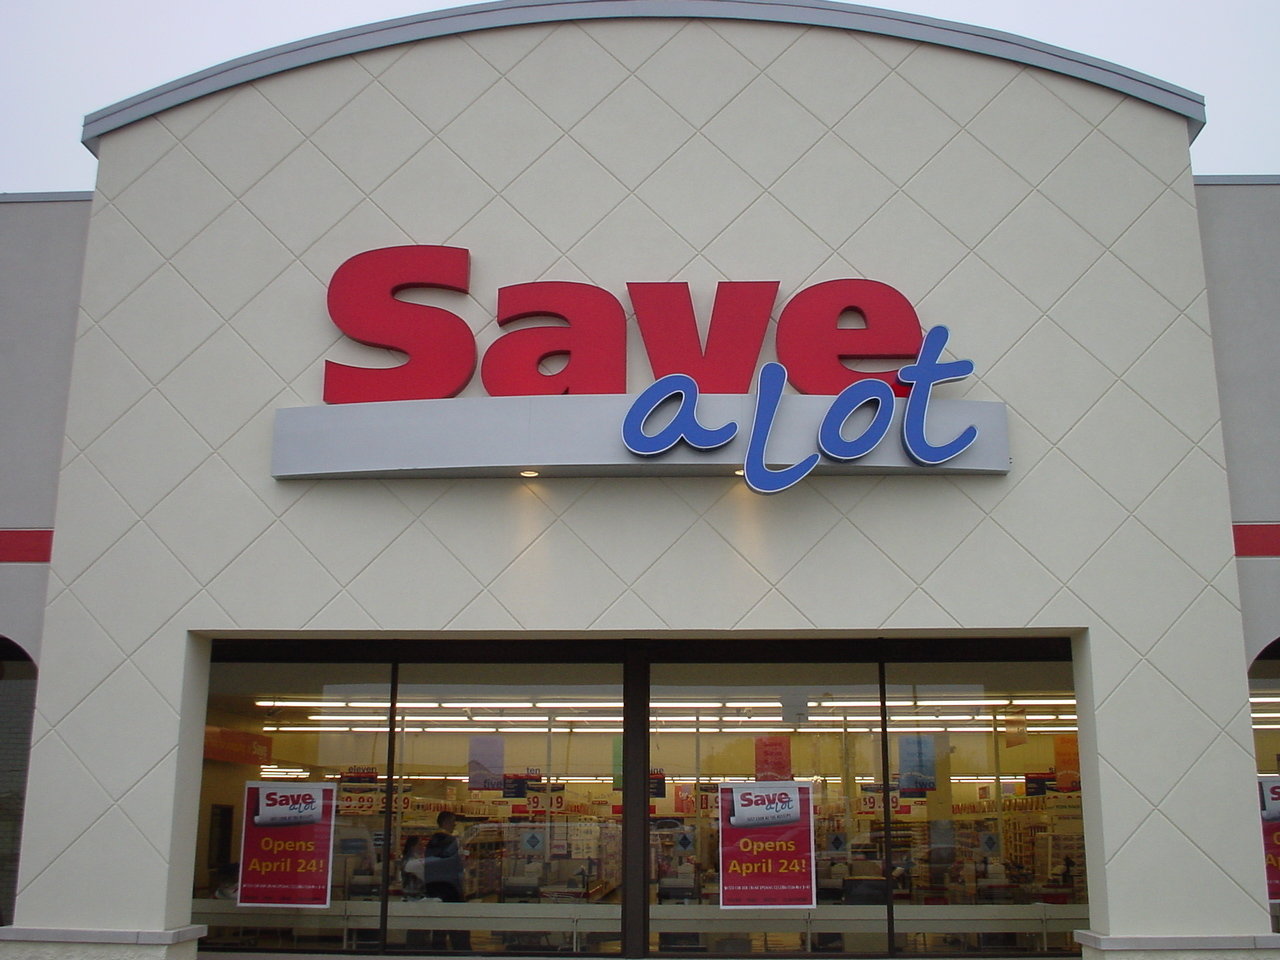 Save-A-Lot Promise. Your Bradford, Pennsylvania Save-A-Lot store offers worry-free grocery shopping with our Save-A-Lot Promise that you'll love our products. If you are not fully satisfied, bring back your item with its receipt for a full refund or replacement item.